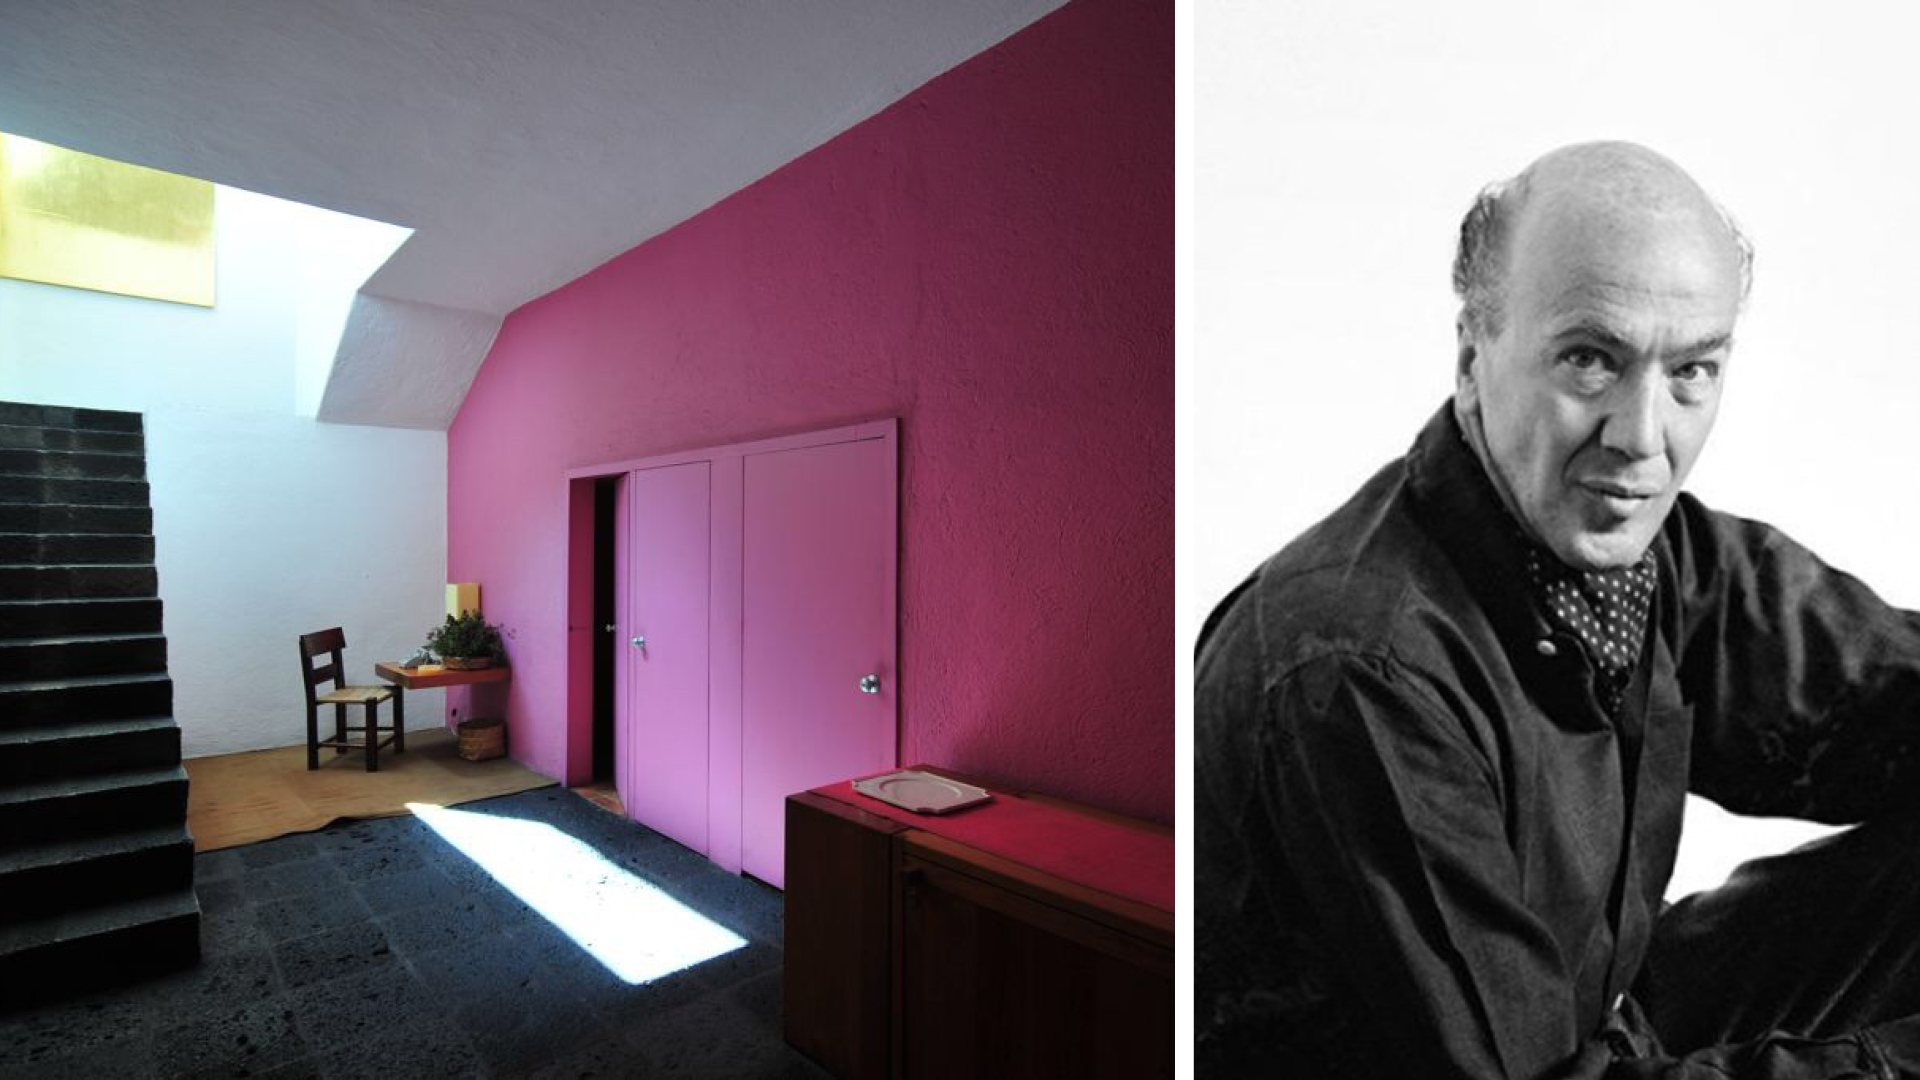 Casa Barragán in Mexico City, late Mexican architect Luis Barragán | Luis Barragán | STIRworld